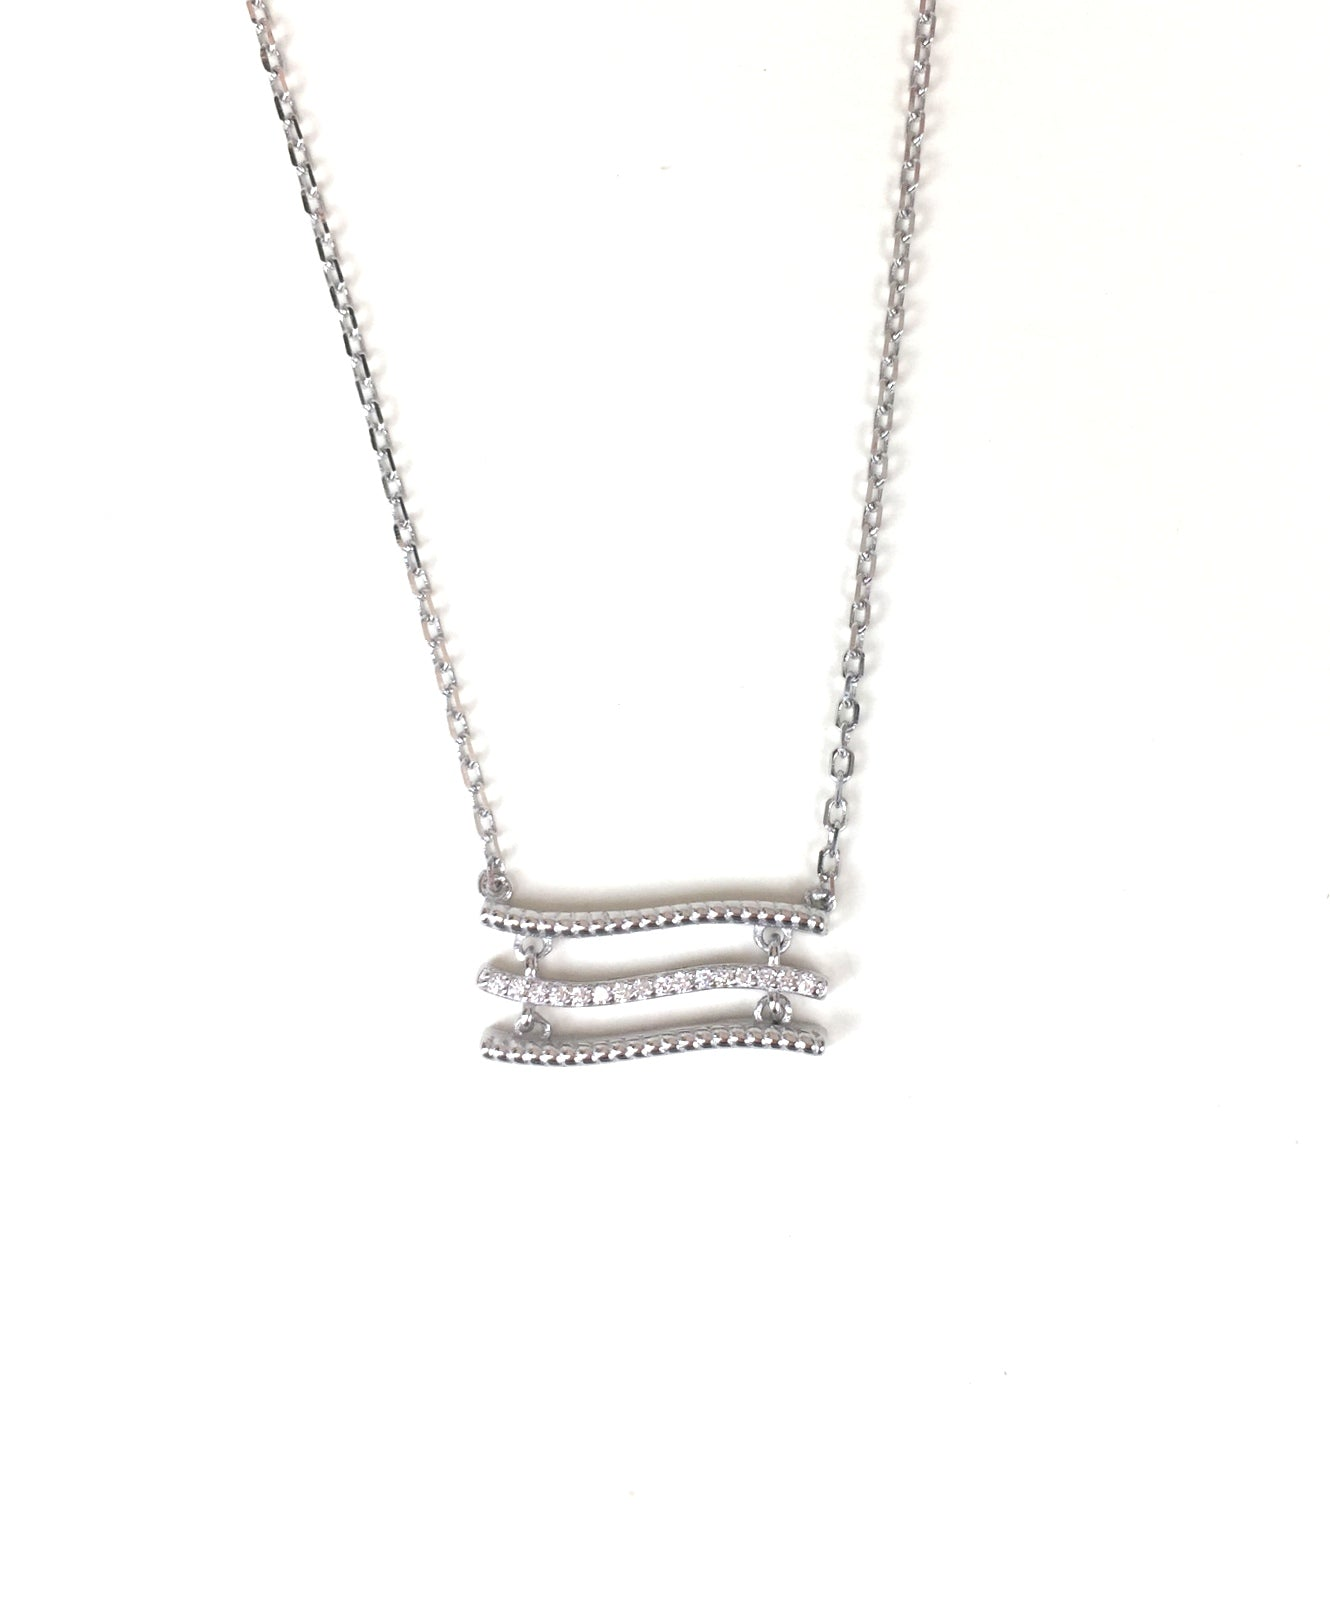 WAVING BARS PAVE CZ STERLING SILVER NECKLACE